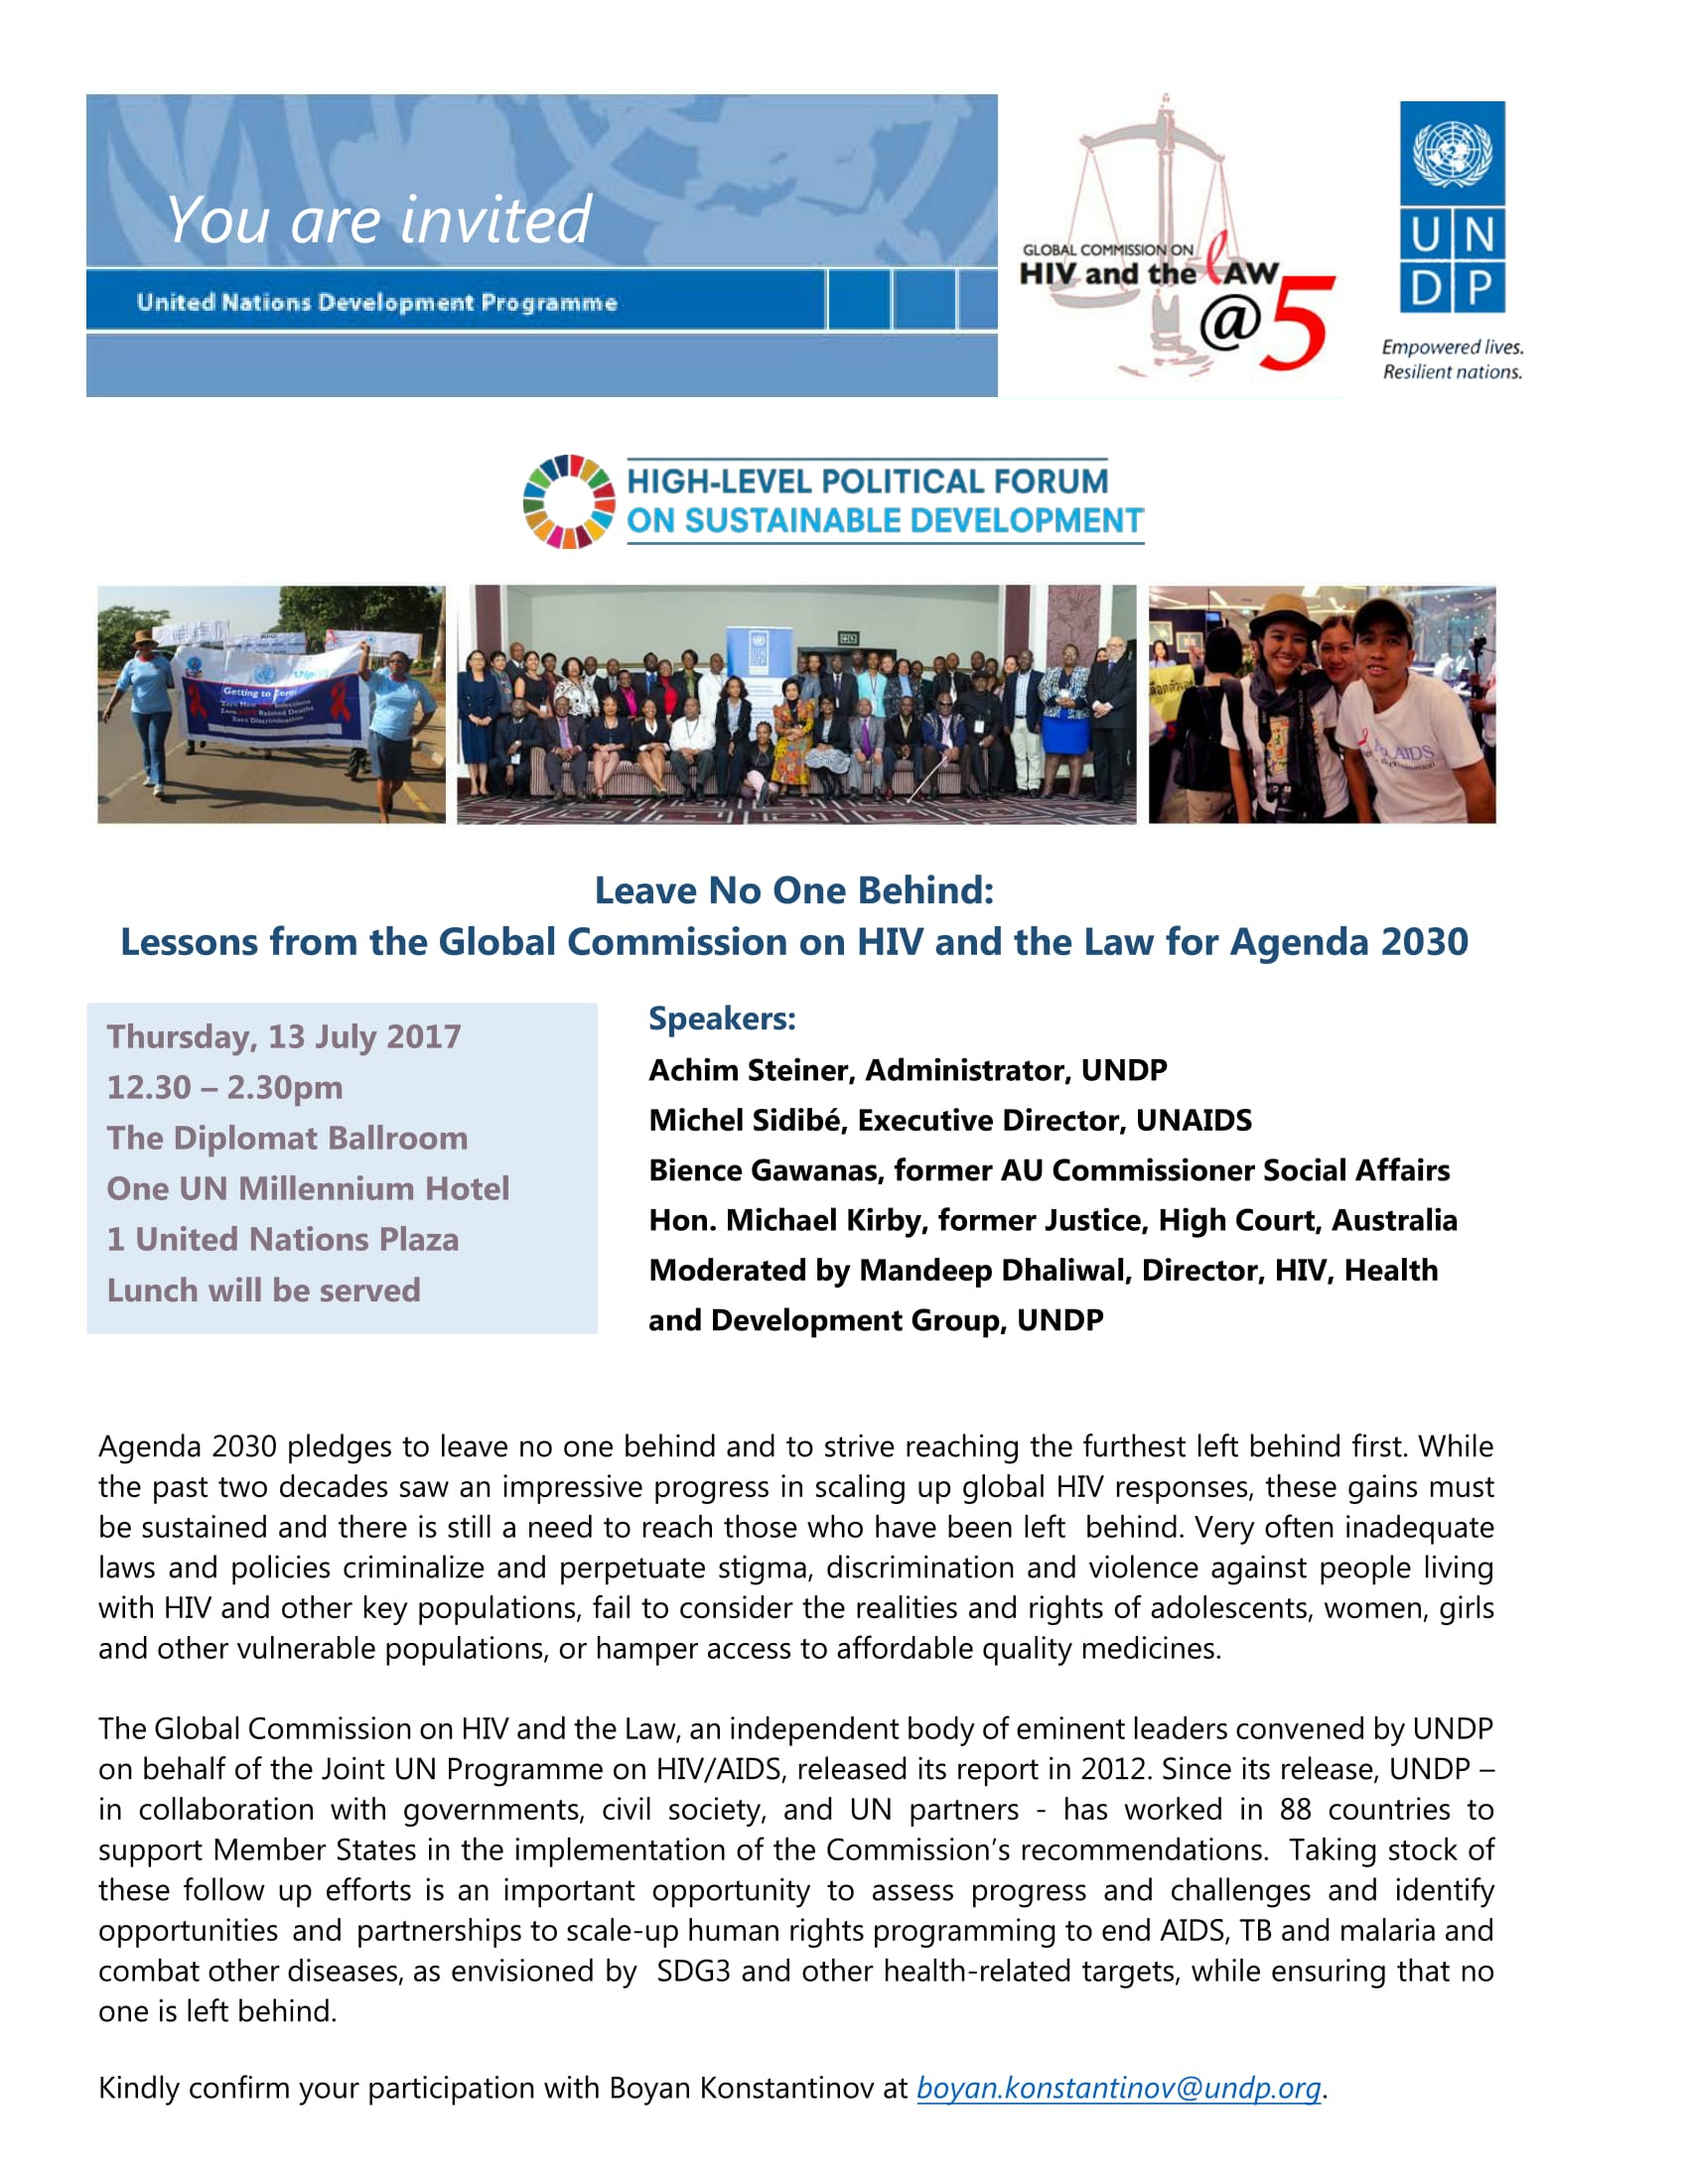 Invitation: Lessons from the Global Commission on HIV and the Law for Agenda 2030